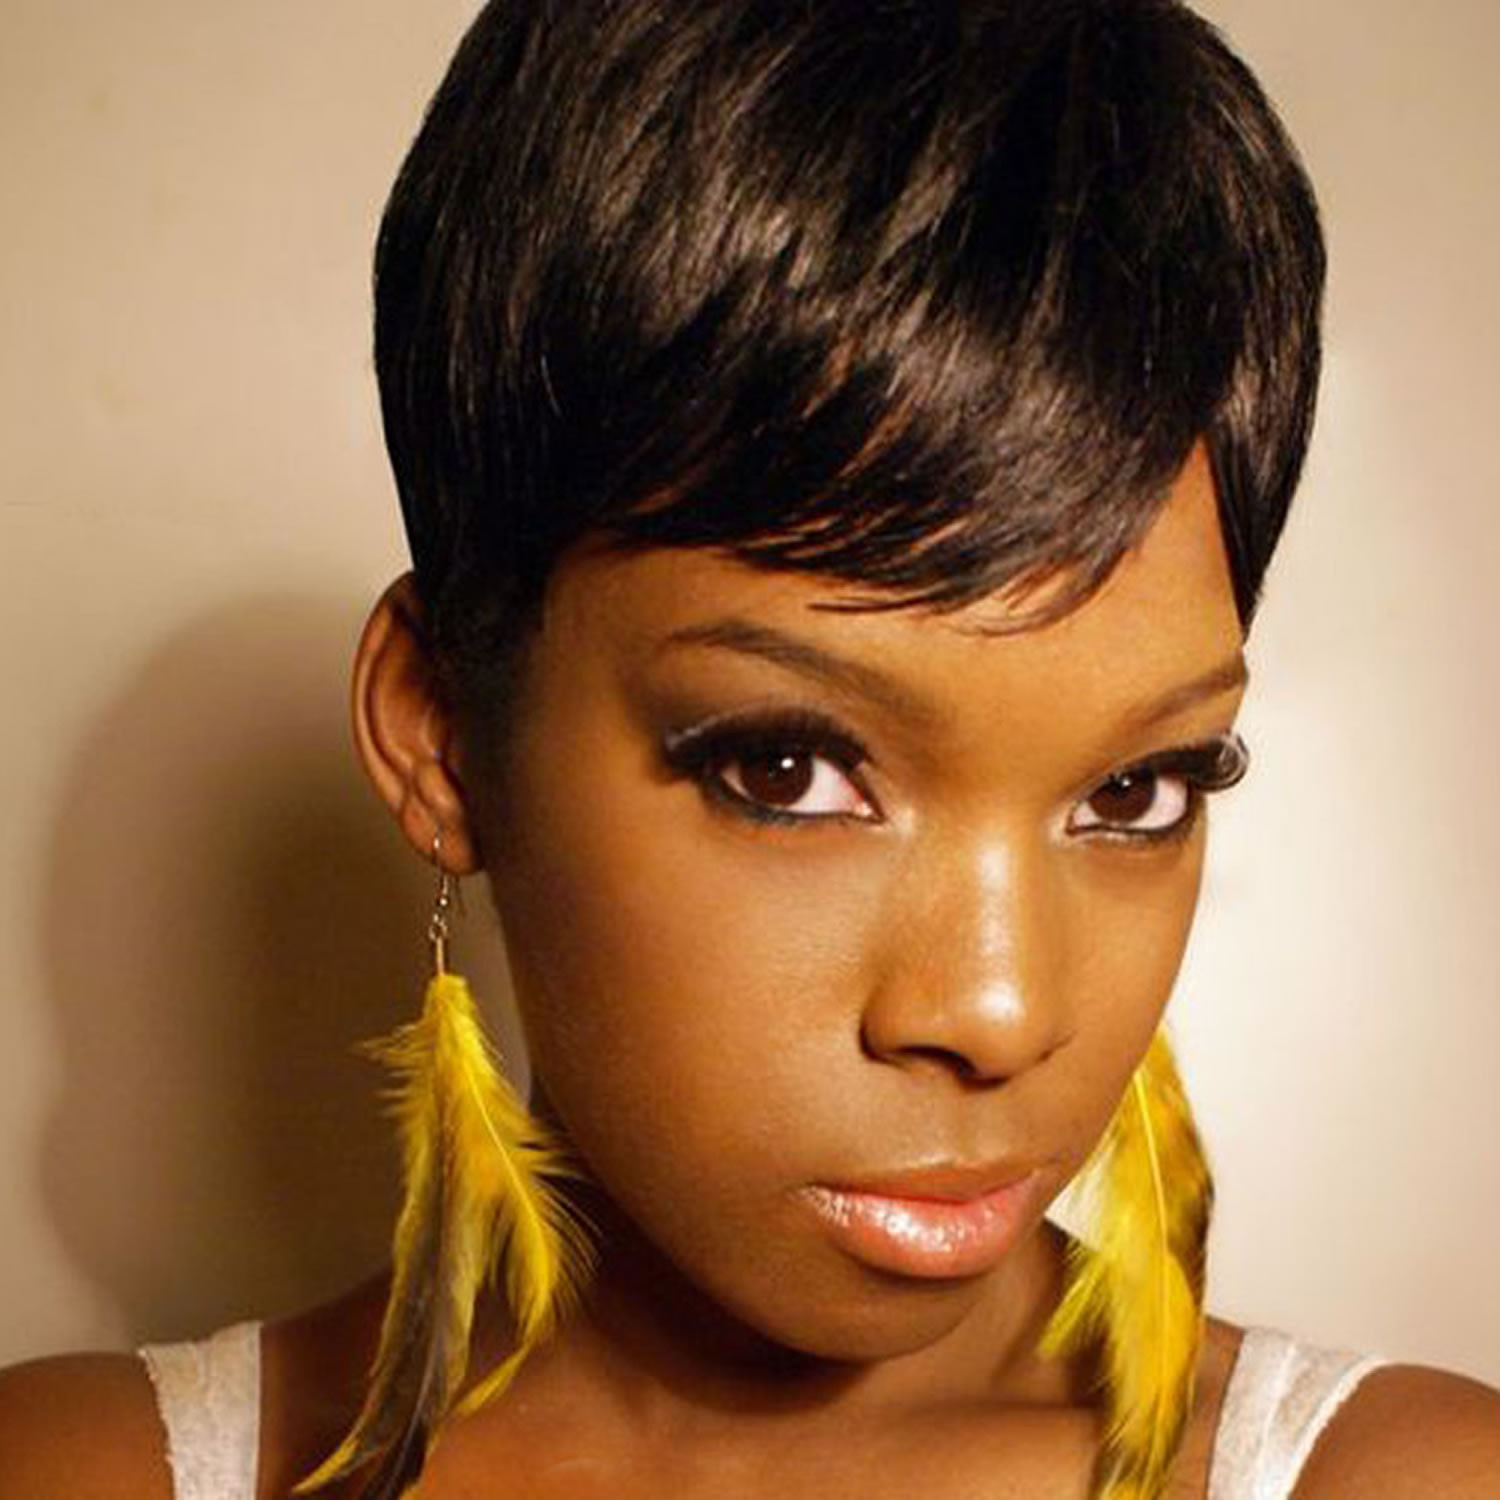 Best ideas about Short Black Girl Haircuts . Save or Pin 2018 Short Haircuts for Black Women – 57 Pixie Short Black Now.